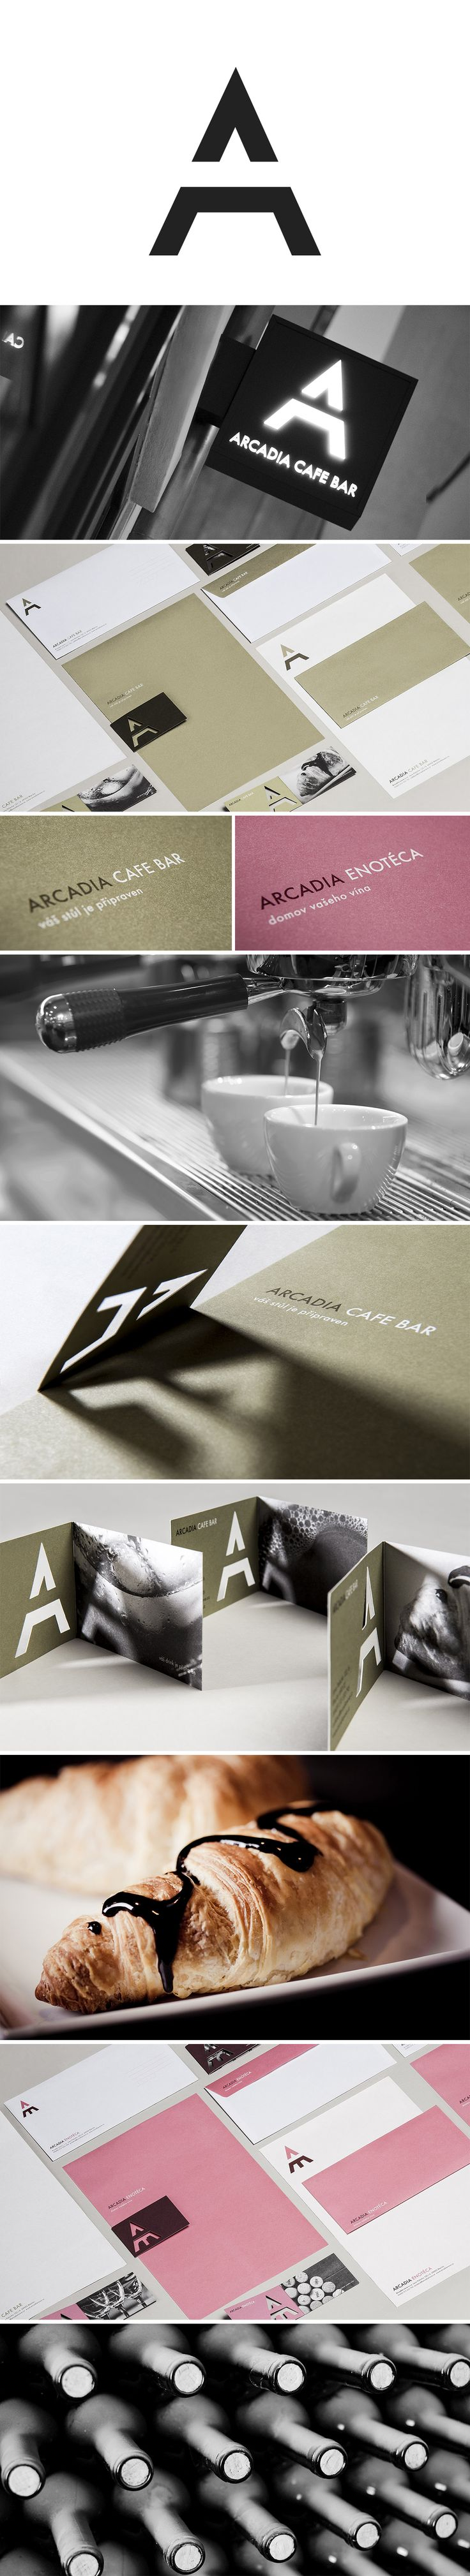 Arcadia Cafe Bar / Enoteca Logo and Visual Identity | Designed by Barbora Toman Tylova | Toman-design